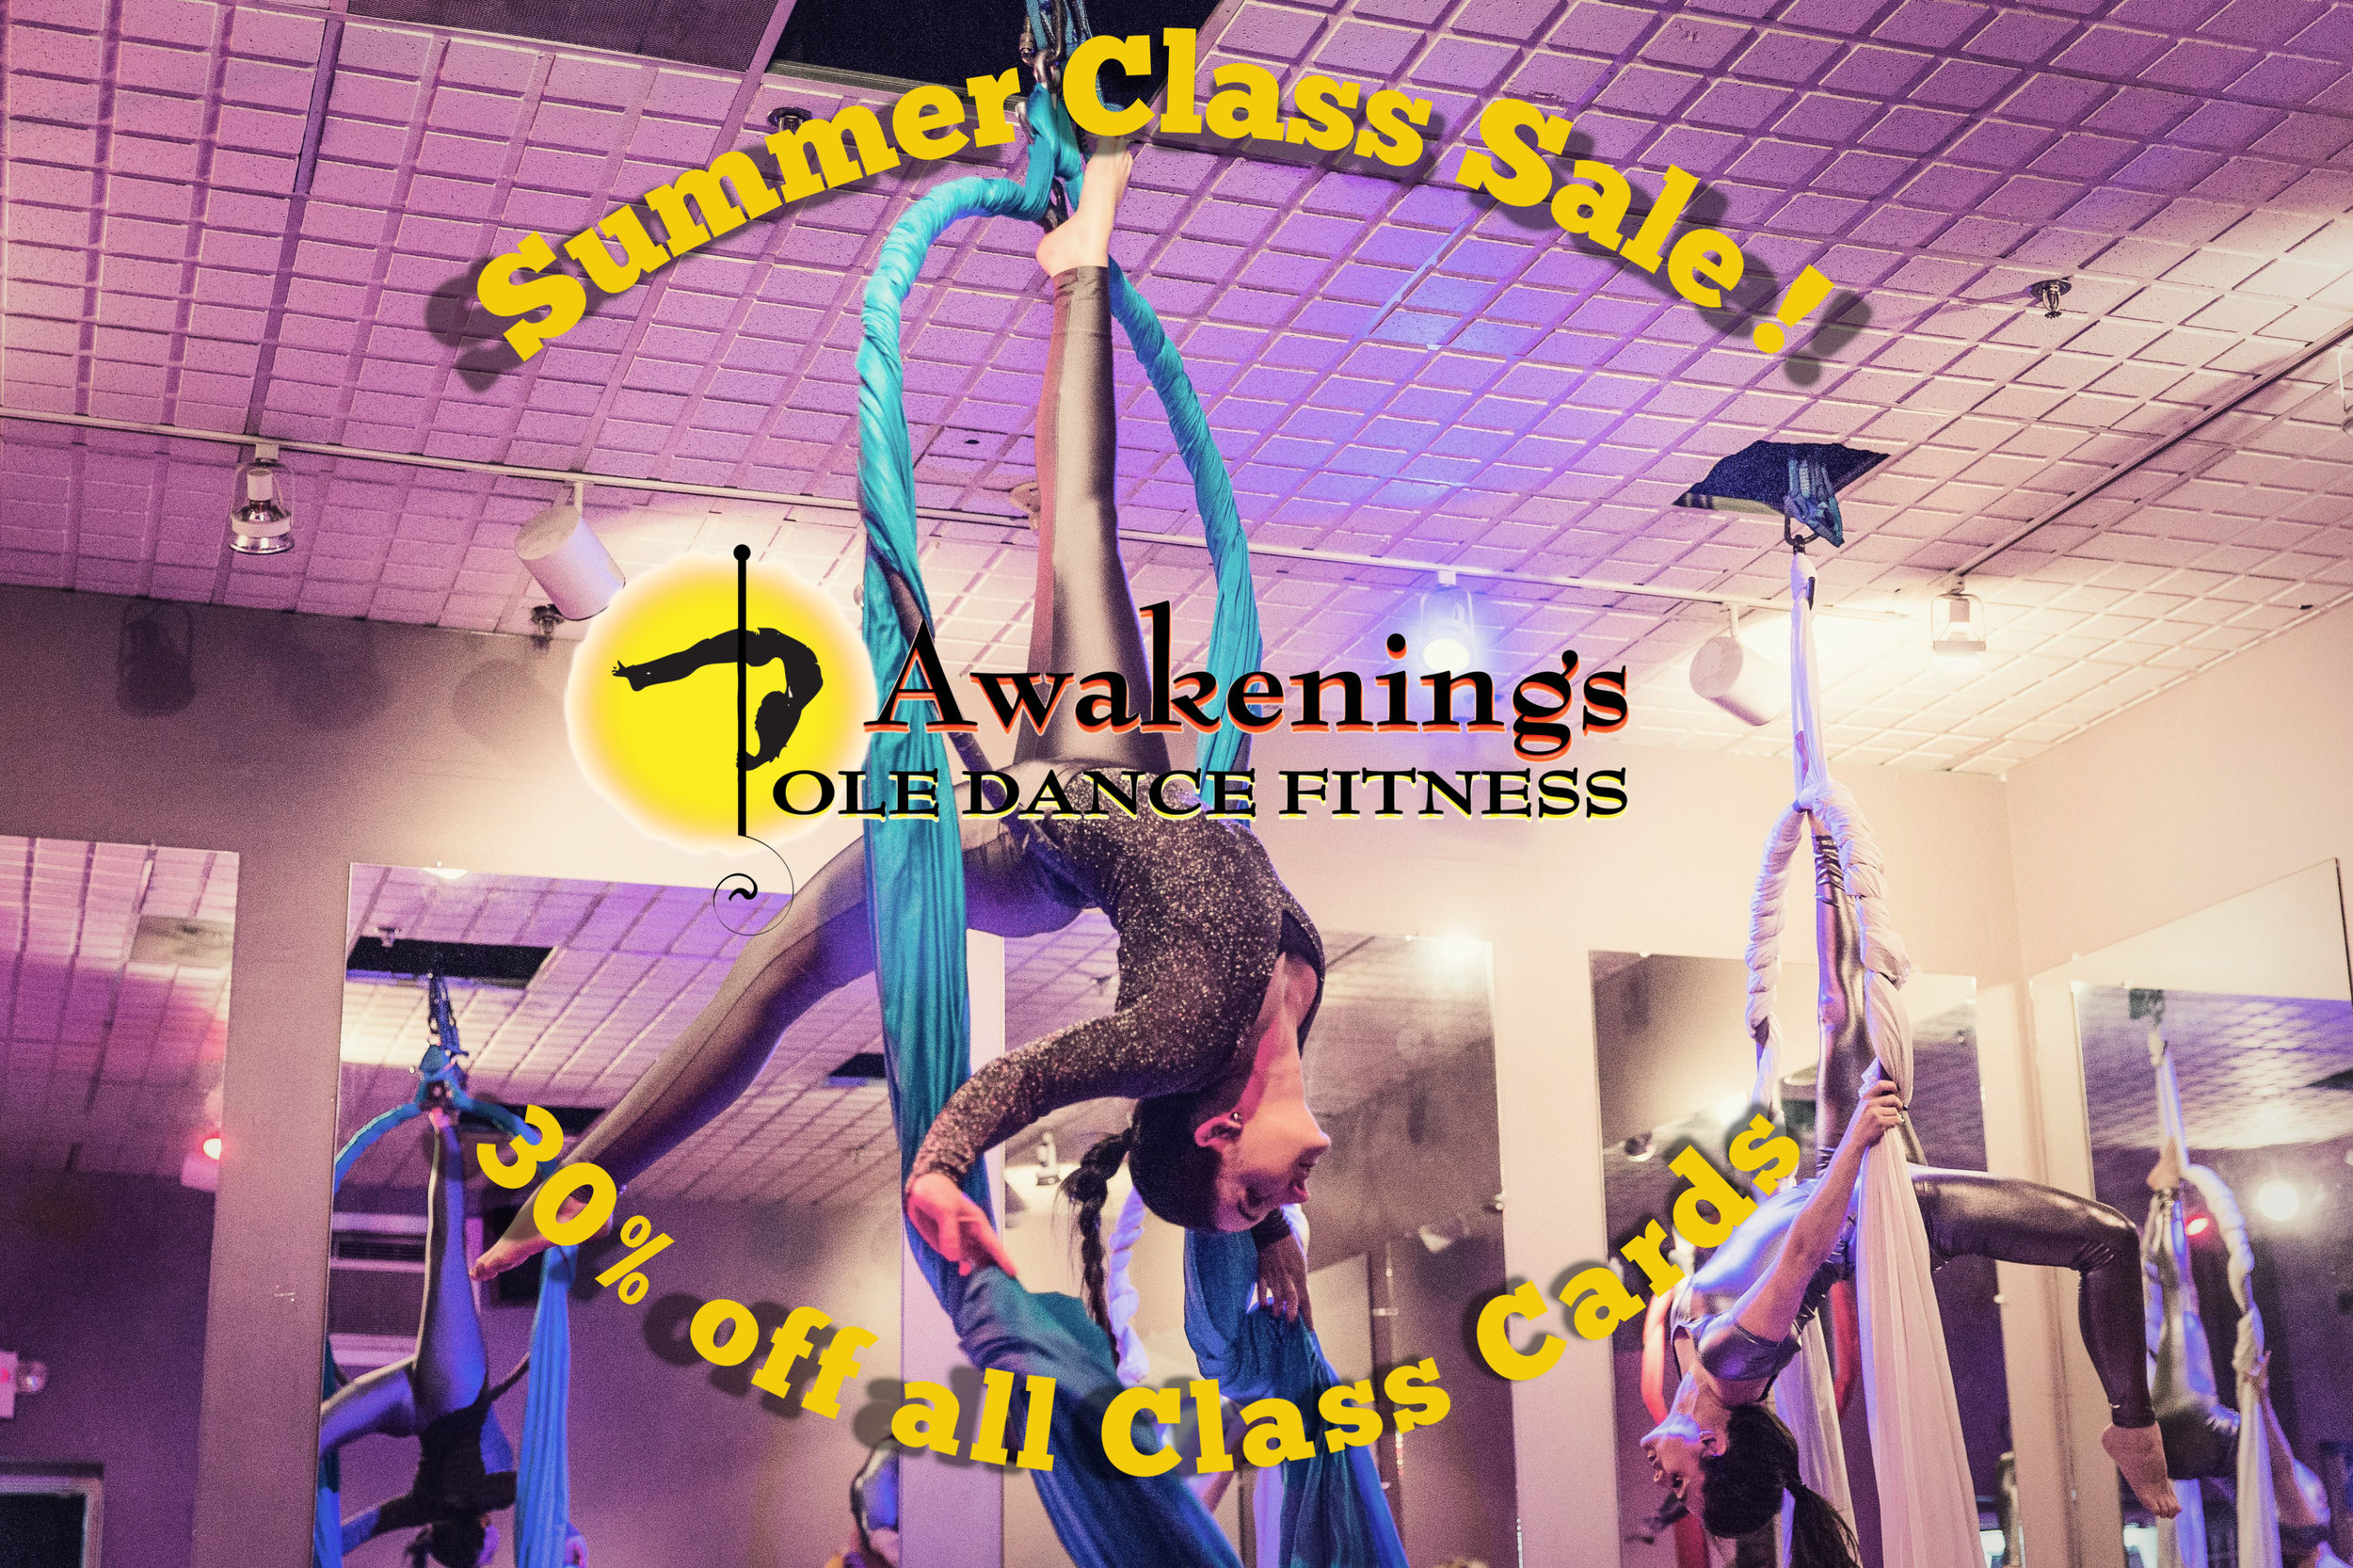 30% off all Class Cards for Memorial Day Weekend only! - These summer class cards are good for all open enrollment classes including pole, aerials, acro and buti-yoga classes! Sale ends at 9:30pm May 27th!